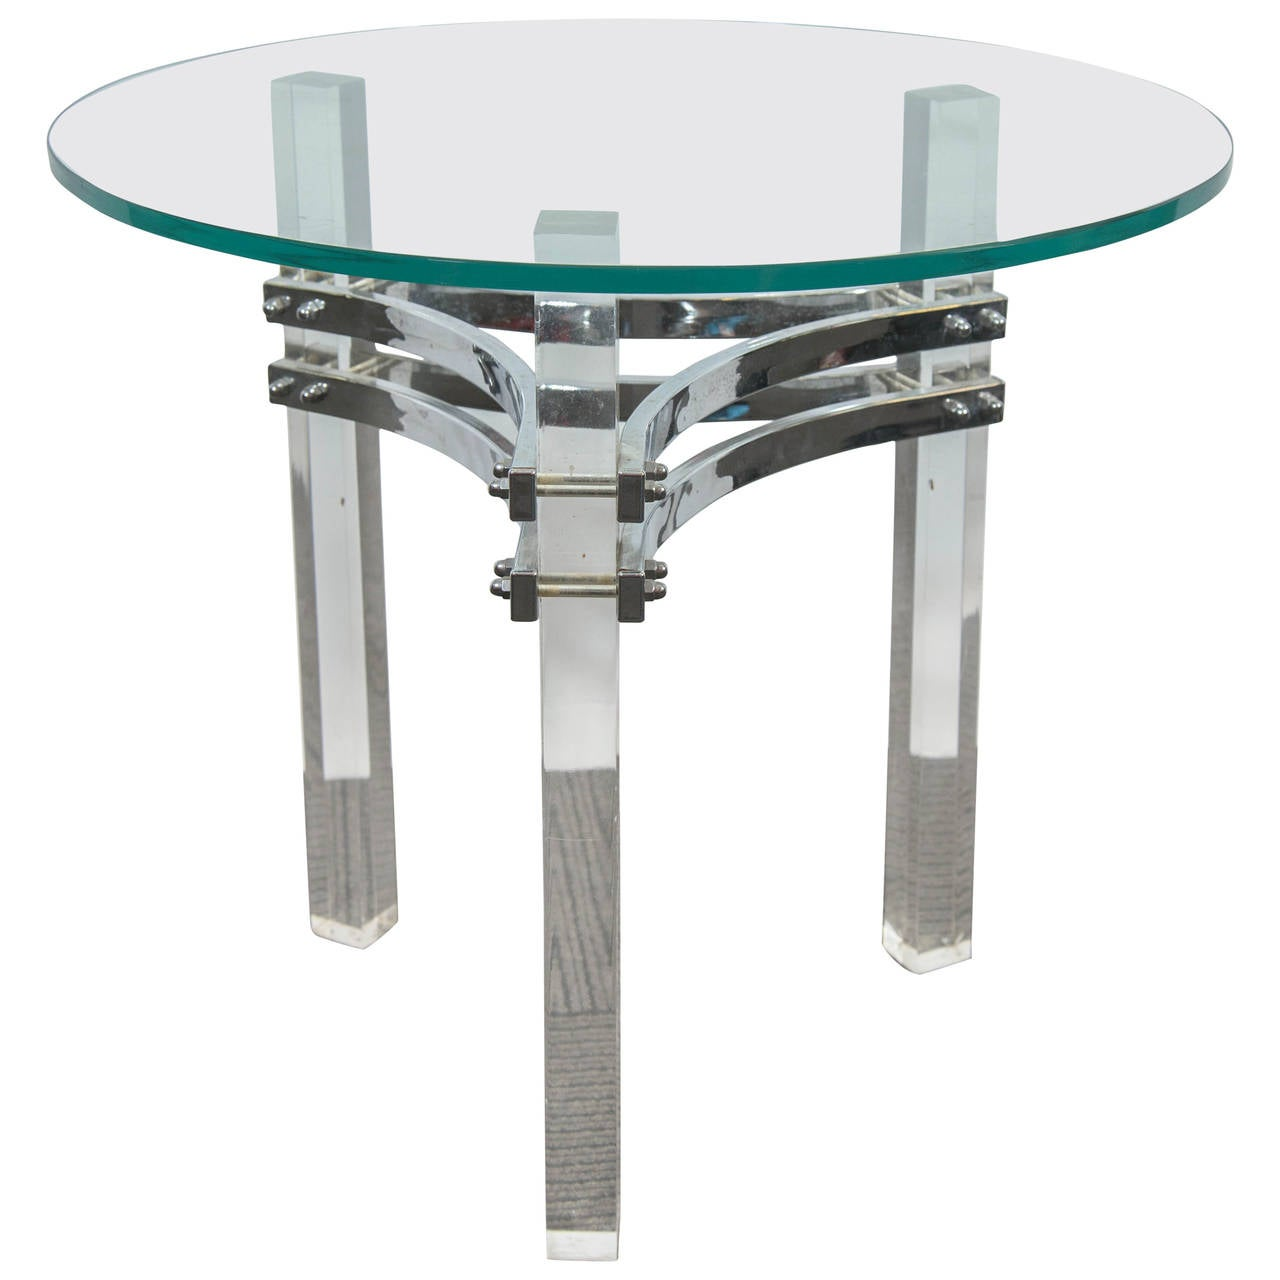 Charles hollis jones glass top side table with chrome and for Side table base